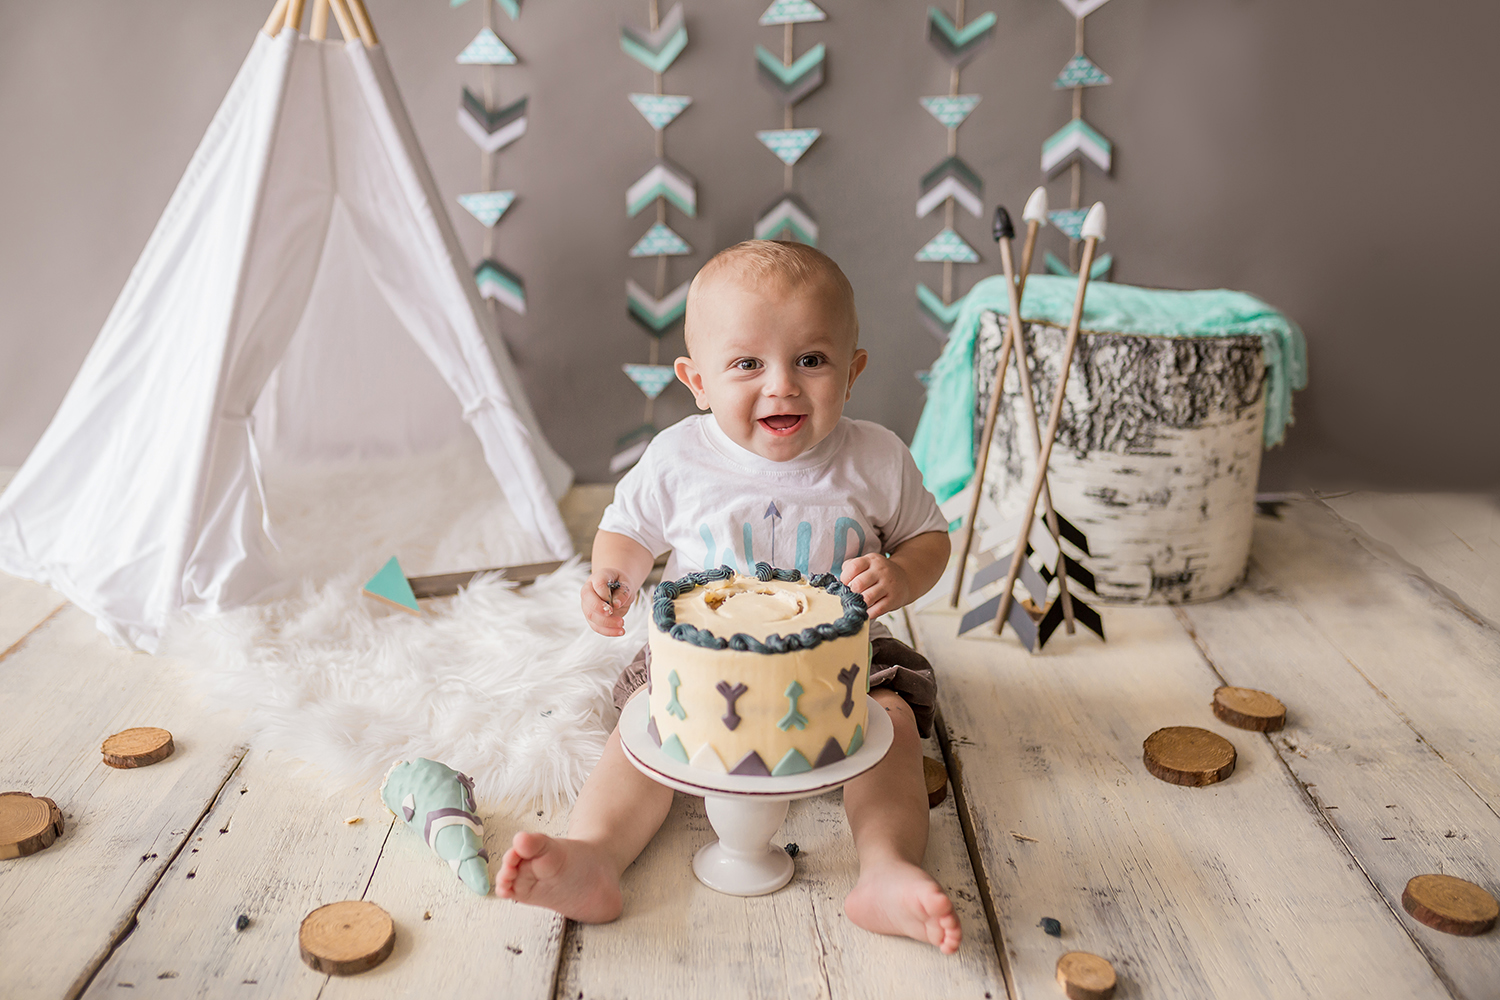 Sweet Snaps Photography - Northern Indiana Cake Smash Photographer.jpg